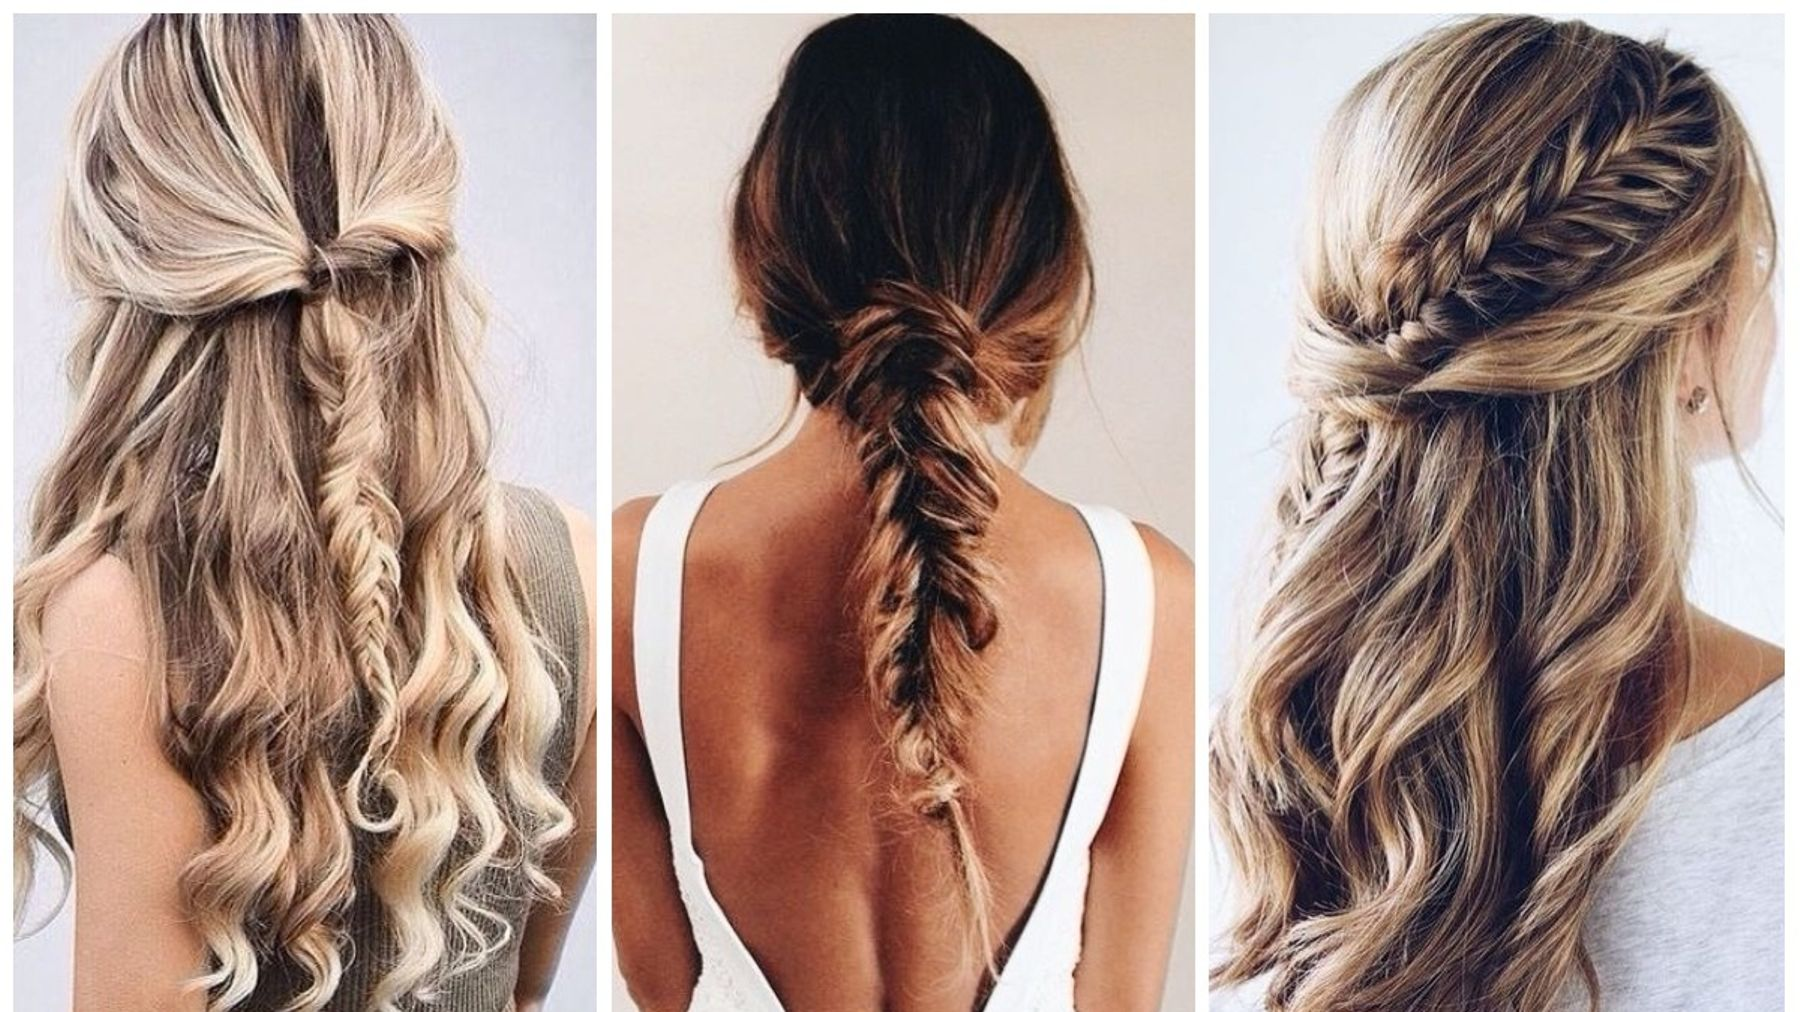 The Fishtail Plait: Step-By-Step Instructions And All The ...